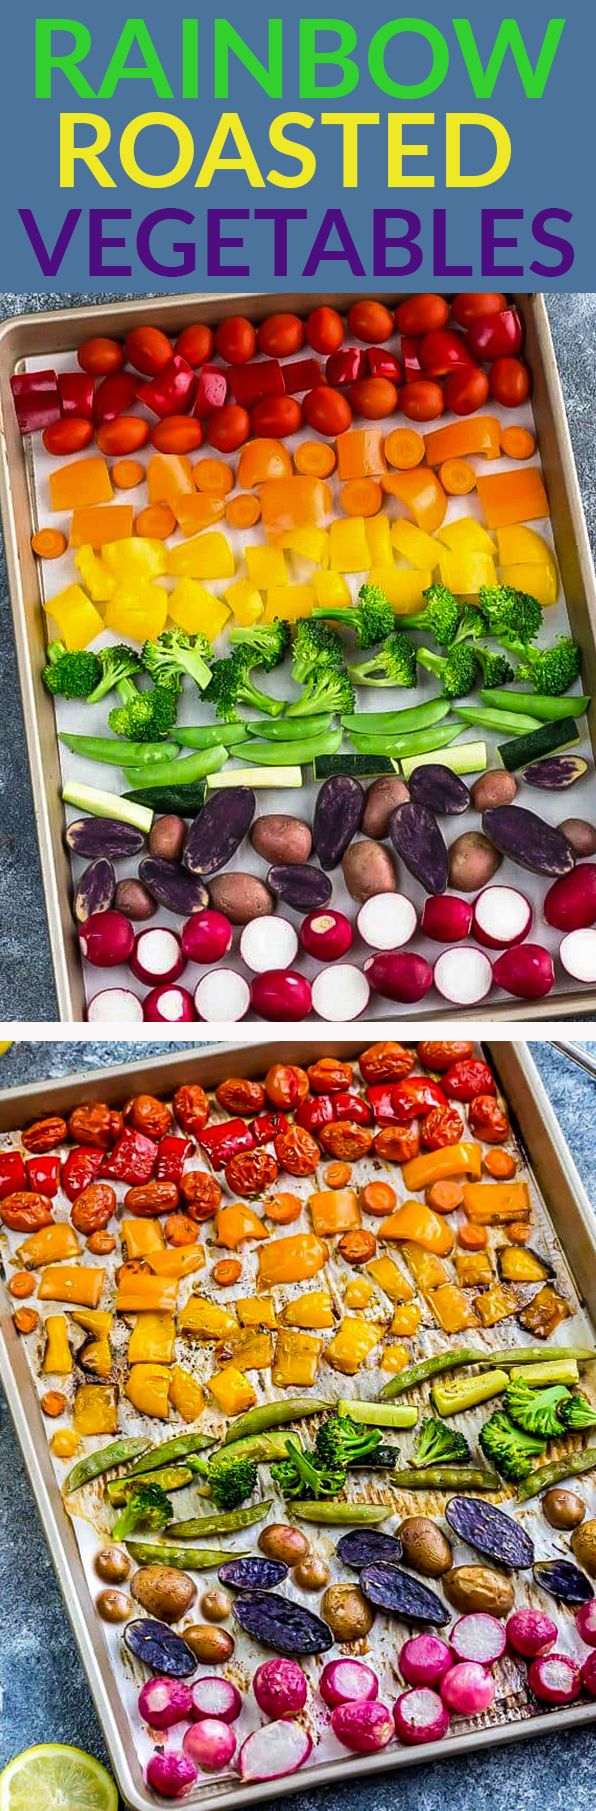 Rainbow Roasted Vegetables makes the perfect easy side dish (paleo Whole 30) arranged in a fun presentation for kids and adults. Best of all, this recipe is simple to customize using any vegetables you like. Great for Sunday meal prep and leftovers are perfect for work or school lunchboxes or lunch bowls. Also great for parties for St. Patrick's Day or potluck and summer BBQ's. #rainbow #vegetables #whole30 #paleo #healthy #sidedish